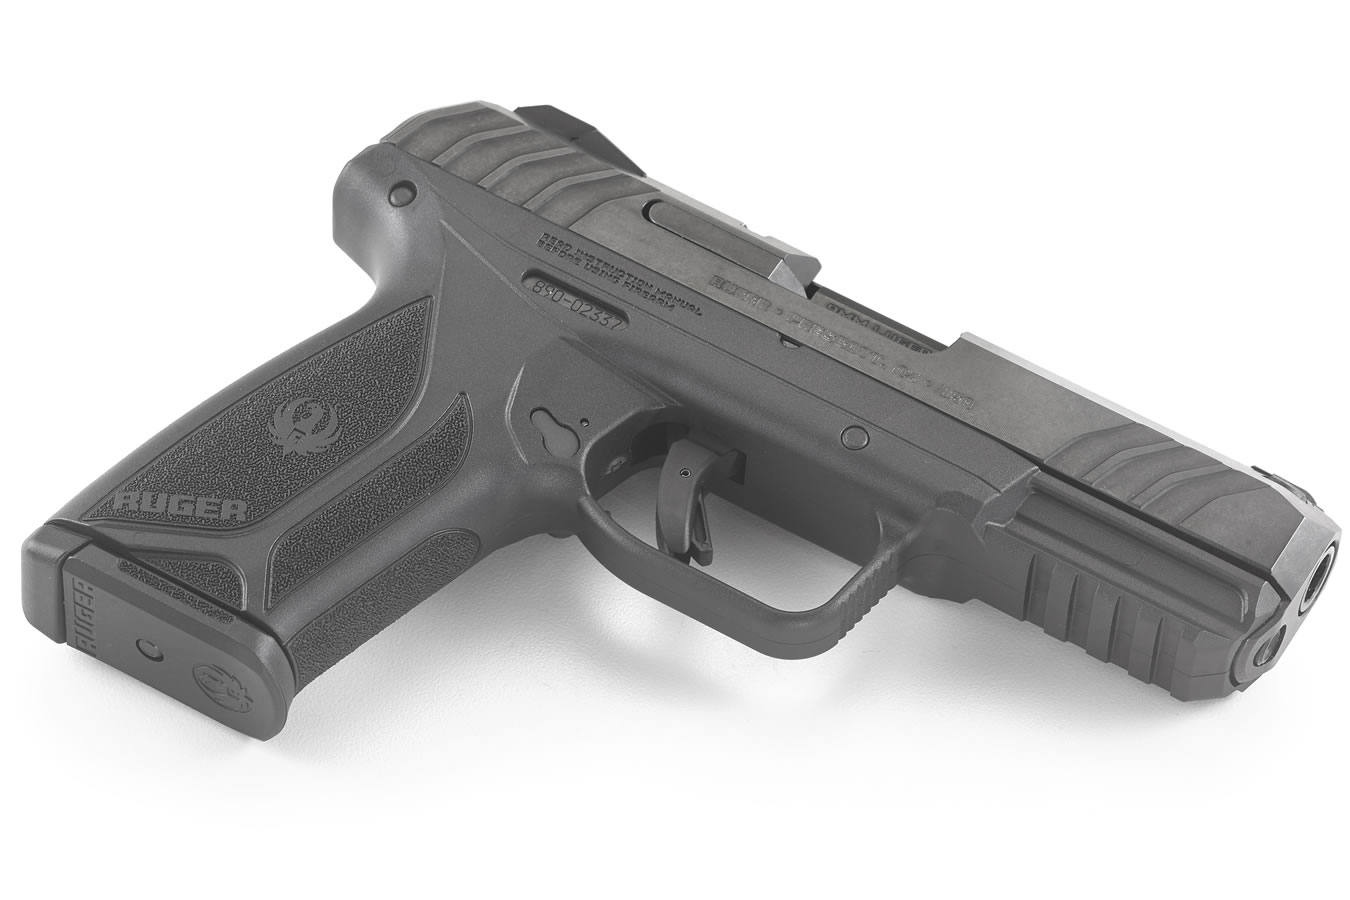 Security-9 9mm Pistol